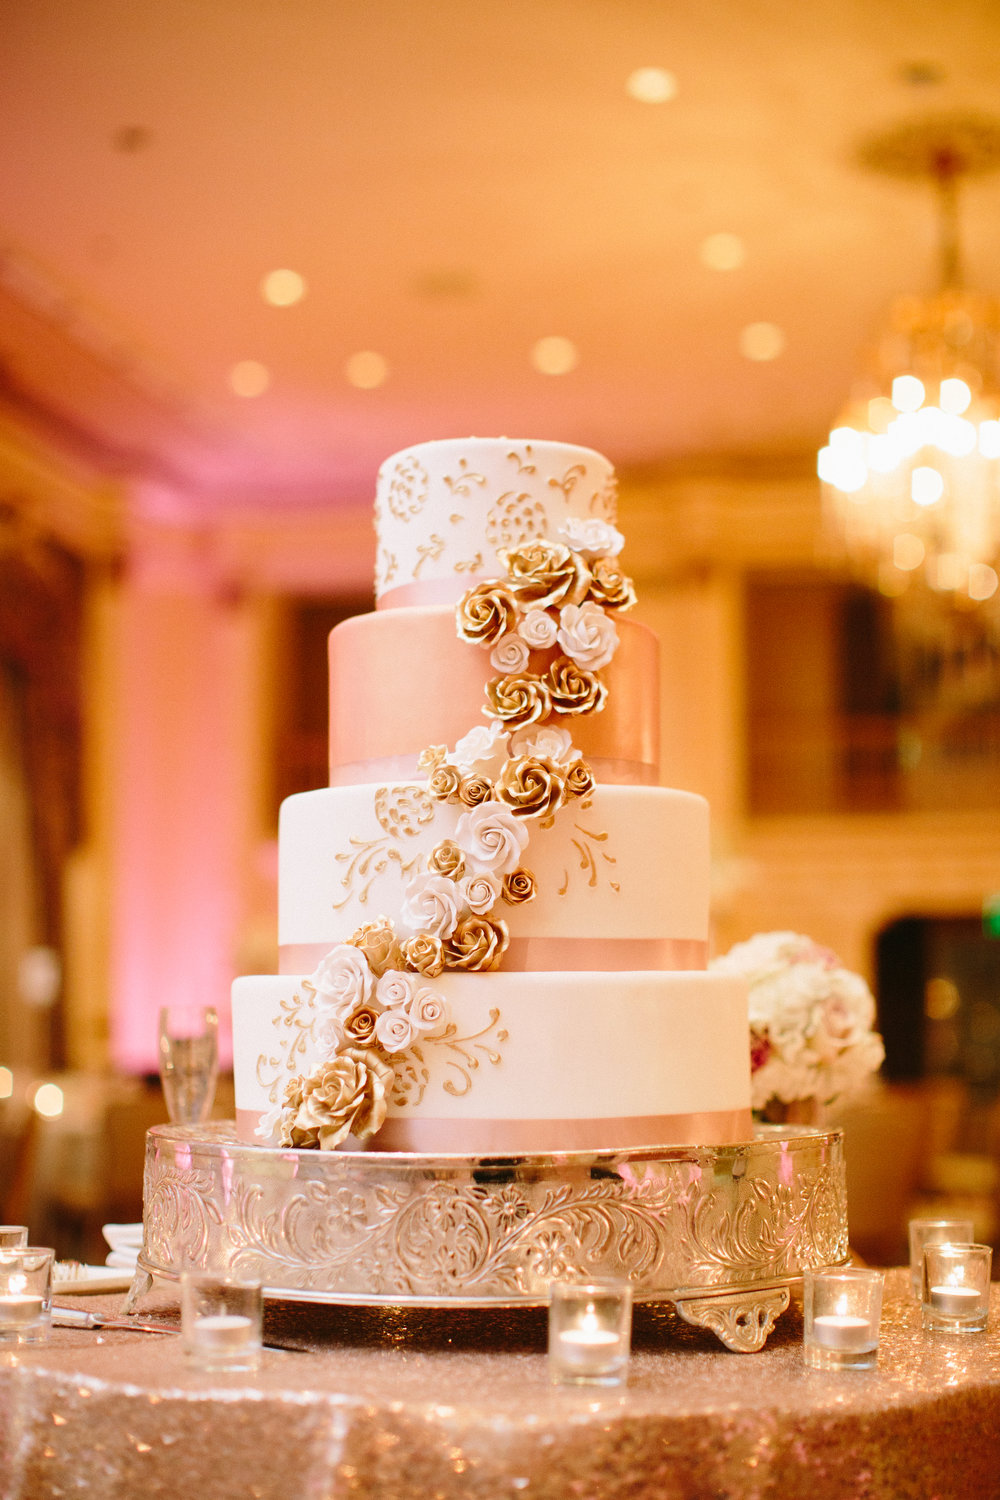 Rose Gold Wedding Cake at the Fairmont Olympic Hotel in Seattle